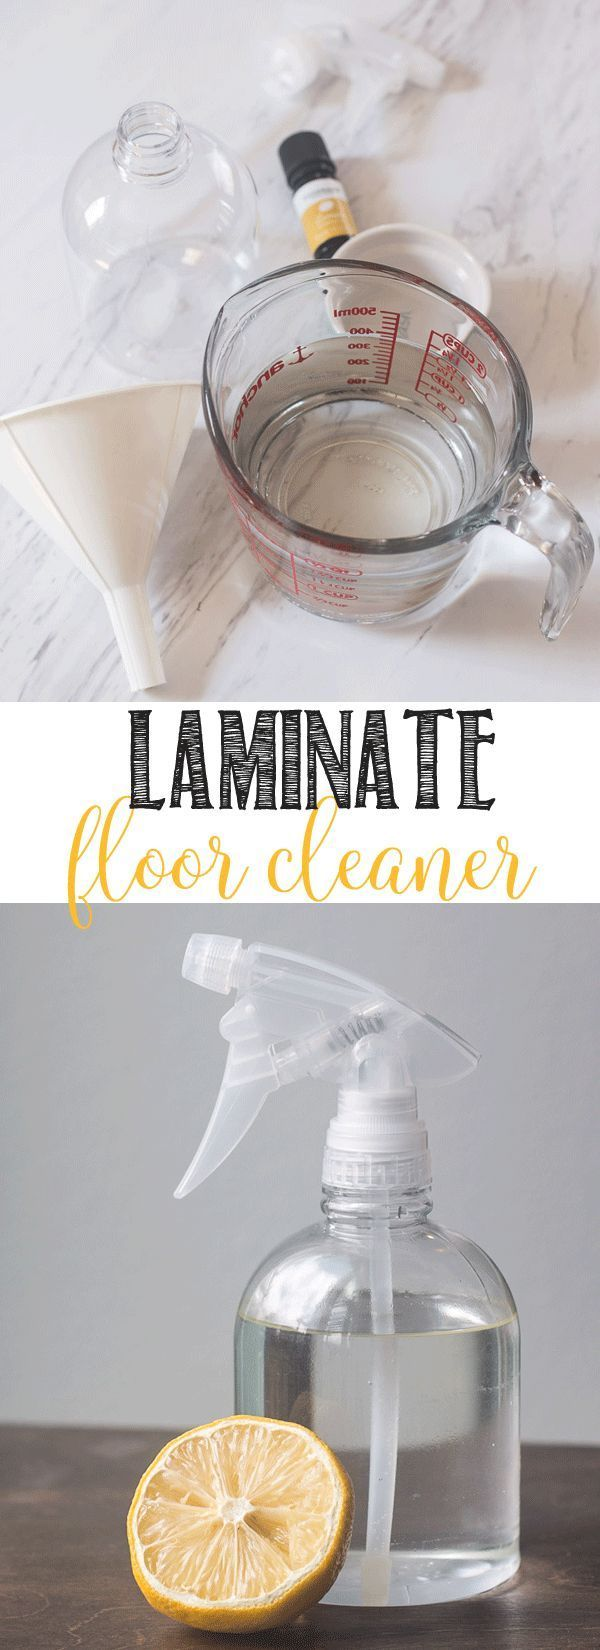 LAMINATE FLOOR CLEANER SUPPLIES {AFFILIATE LINKS INCLUDED FOR YOUR CONVENIENCE} spray bottle water – 1 3/4 cups white vinegar – 2 tablespoons essential oil (I love lemon or peppermint and lavender together) – 6 to 8 drops funnel – makes the job easier mop